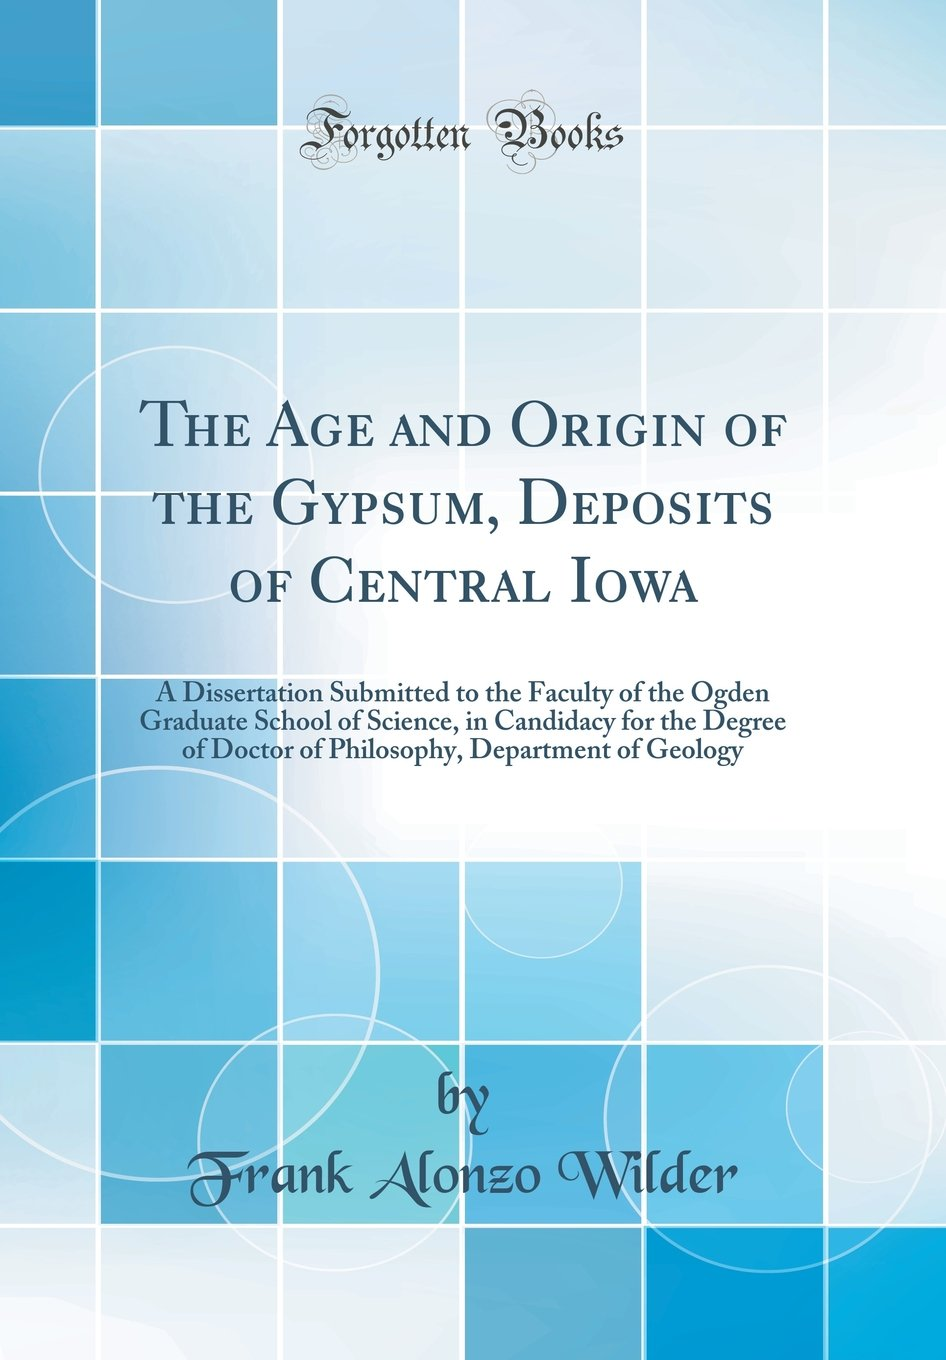 The Age and Origin of the Gypsum, Deposits of Central Iowa: A Dissertation Submitted to the Faculty of the Ogden Graduate School of Science, in ... Department of Geology (Classic Reprint) PDF